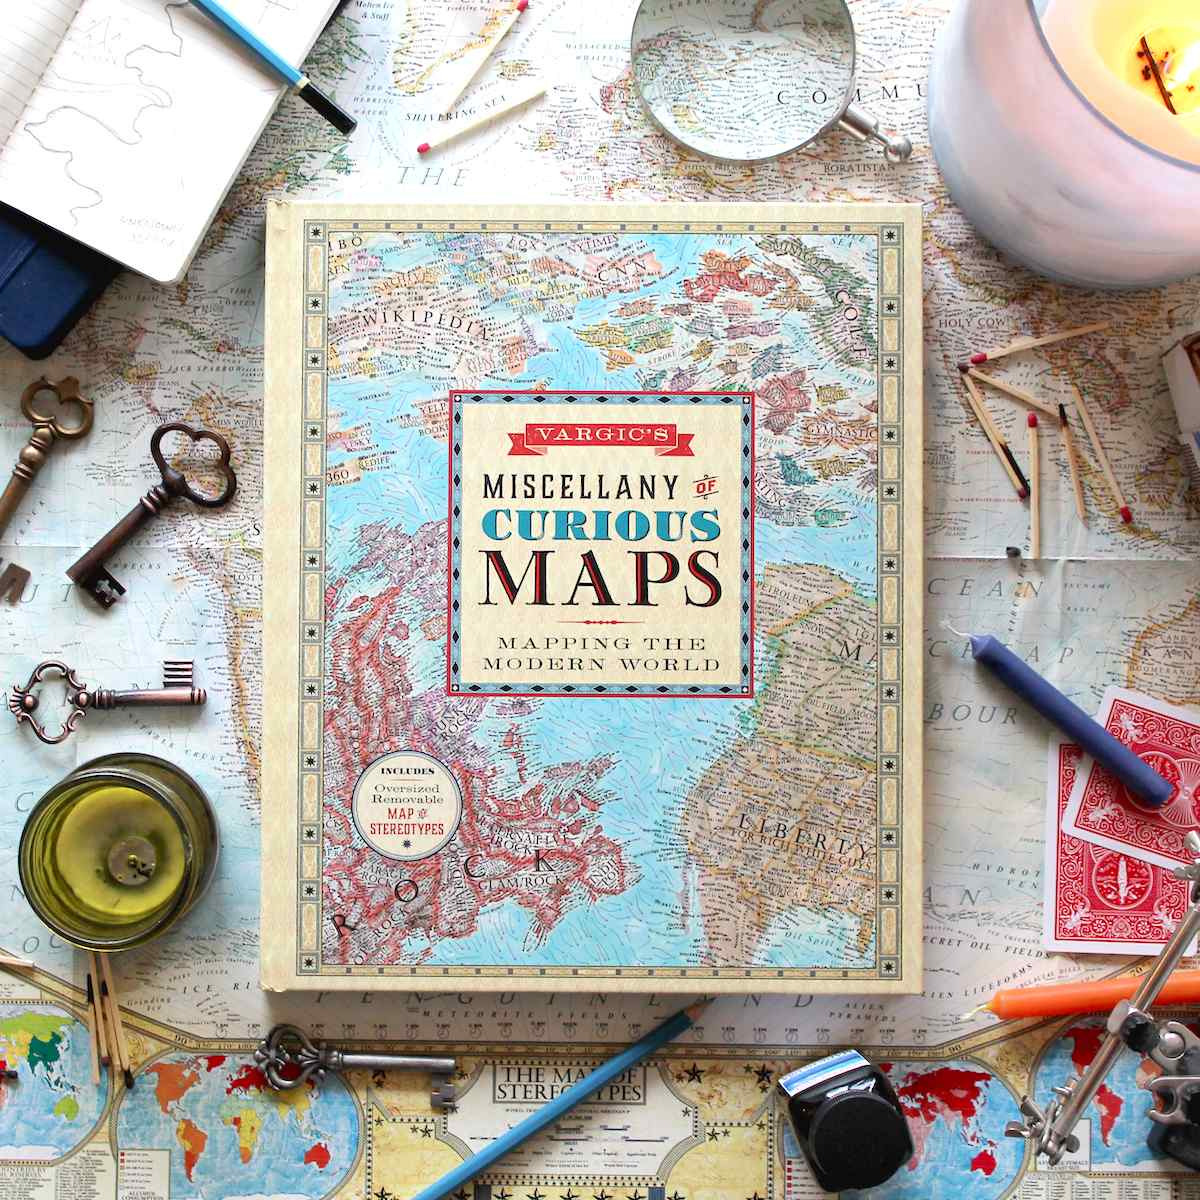 Clic cartographic techniques to map out music, gaming ... on map of leadership, map of payphones, map of national area codes, map of discrimination, map of slang, map of racism in america, map of writing, map of you and me, map of empathy, map of ideology, map of abuse, map of morality, map of speech, map of babies, map of homosexuality, map of the corporate world, map of values, map of religious persecution, map of police brutality, map of hatred,